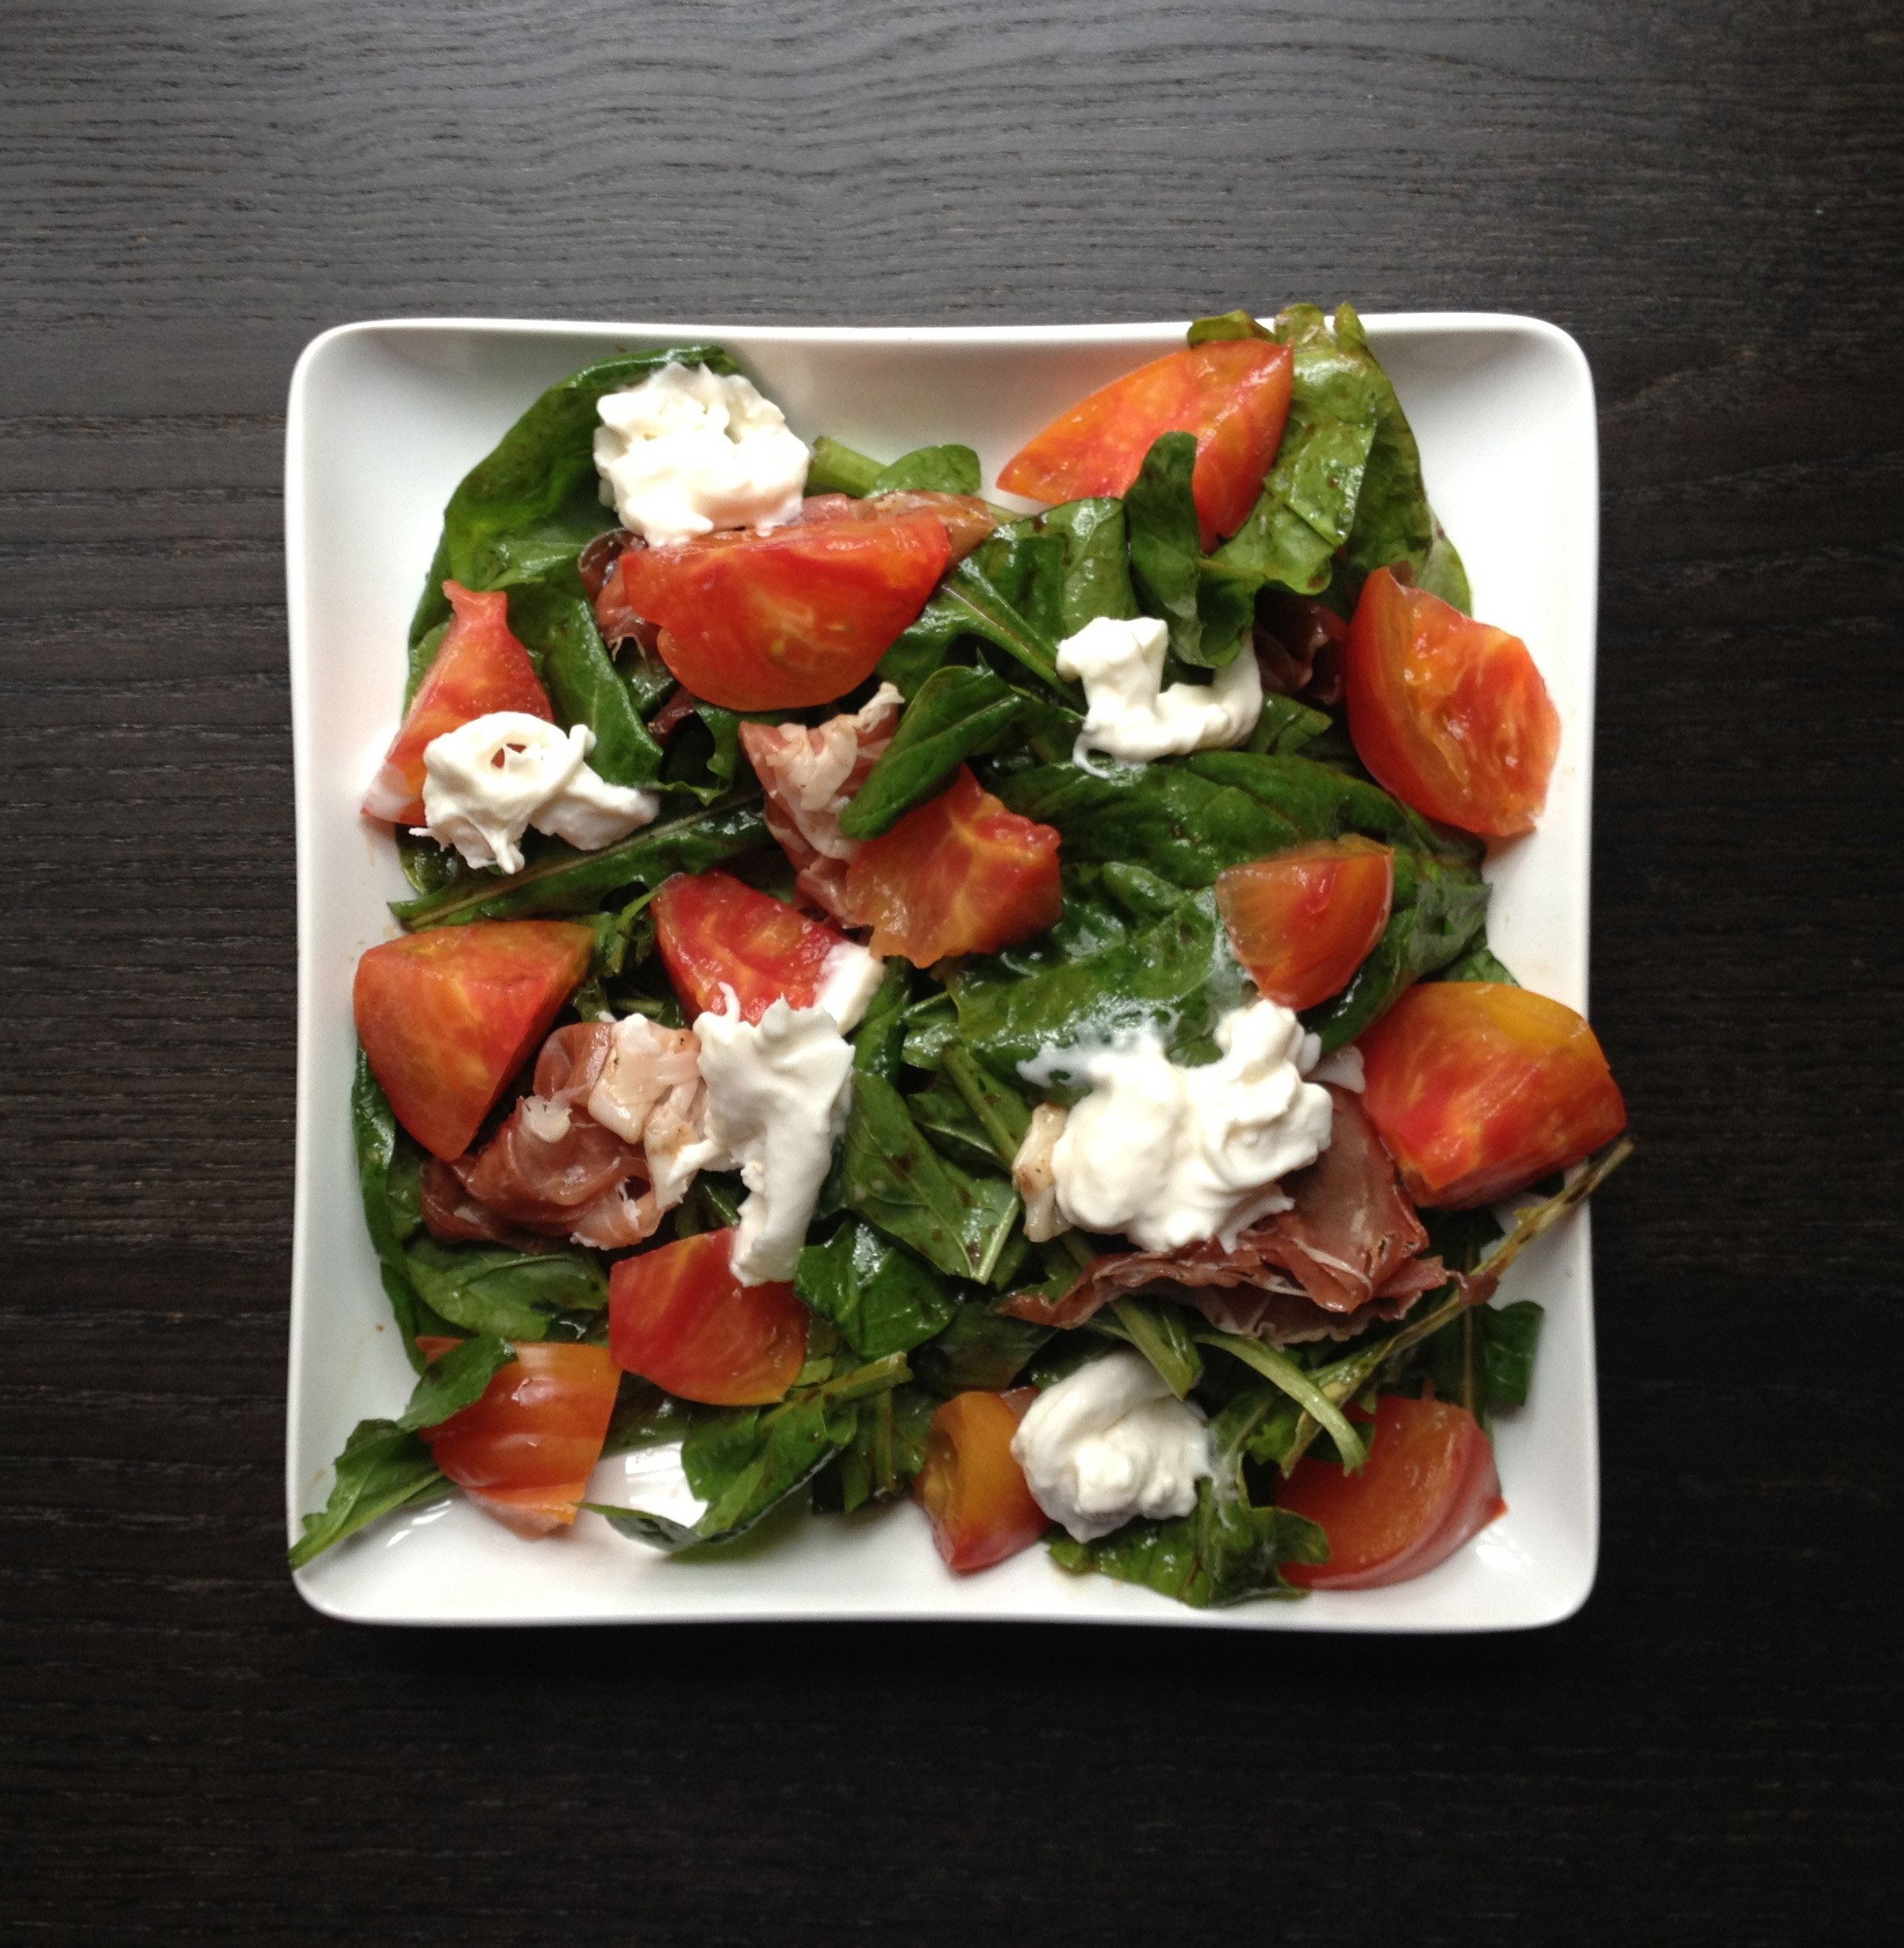 ... spinach and wild arugula tossed with a simple balsamic vinaigrette